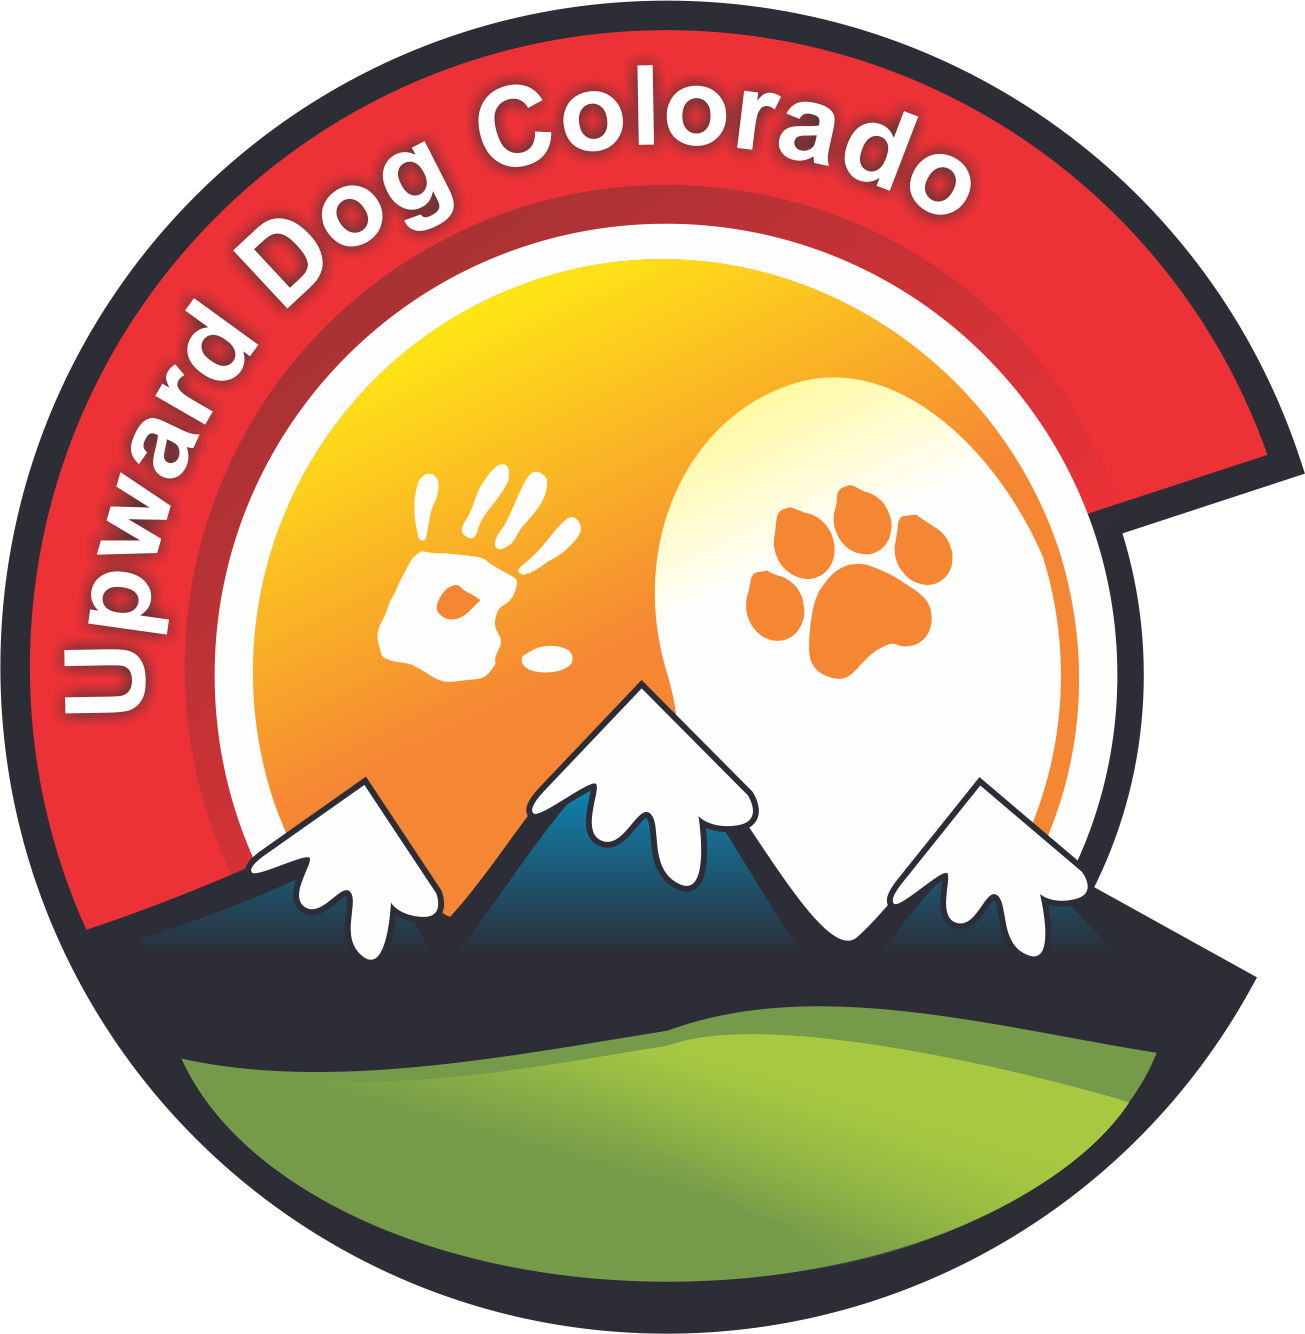 Upward Dog Colorado